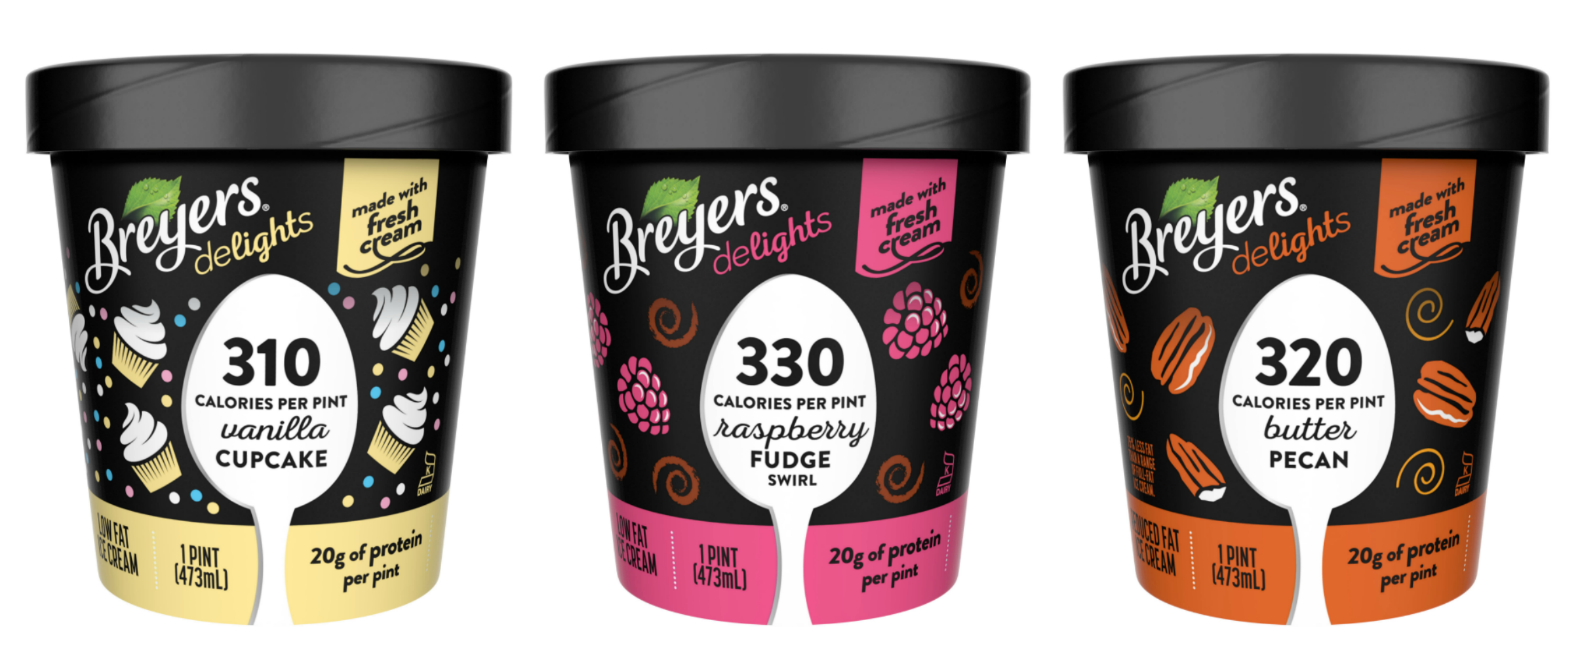 Astounding Breyers Is Adding Three New Flavors To Its Low Calorie Ice Cream Line Funny Birthday Cards Online Alyptdamsfinfo